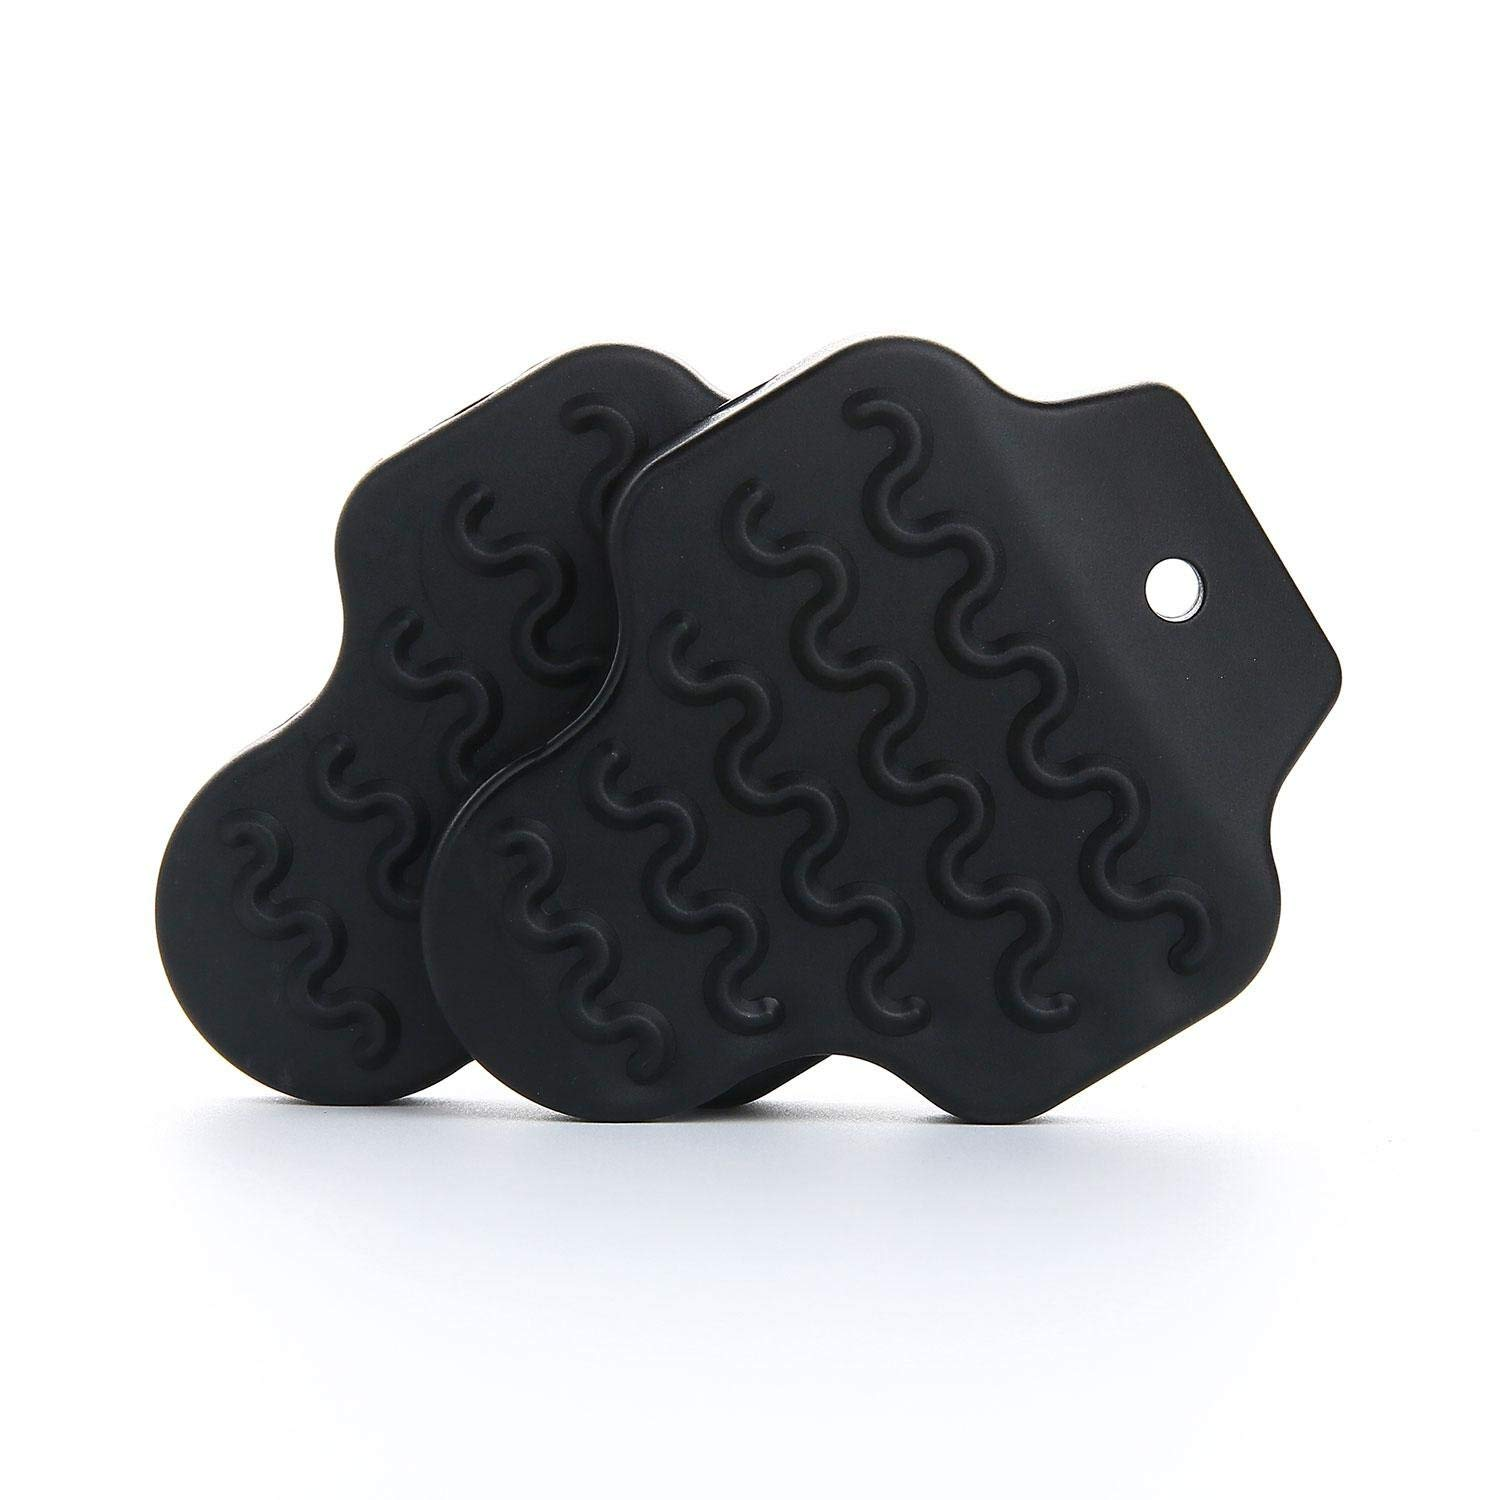 Aolvo Bike Shoe Cleat Covers, Anti Slip Quick Release Rubber Bike Pedal Cleat Covers Protector for LOOK KEO, Wellgo RC7, E-ARC10/10k/11, E-BLK10/10K/11 Bike Pedal Cleat Systems - 1 Pair